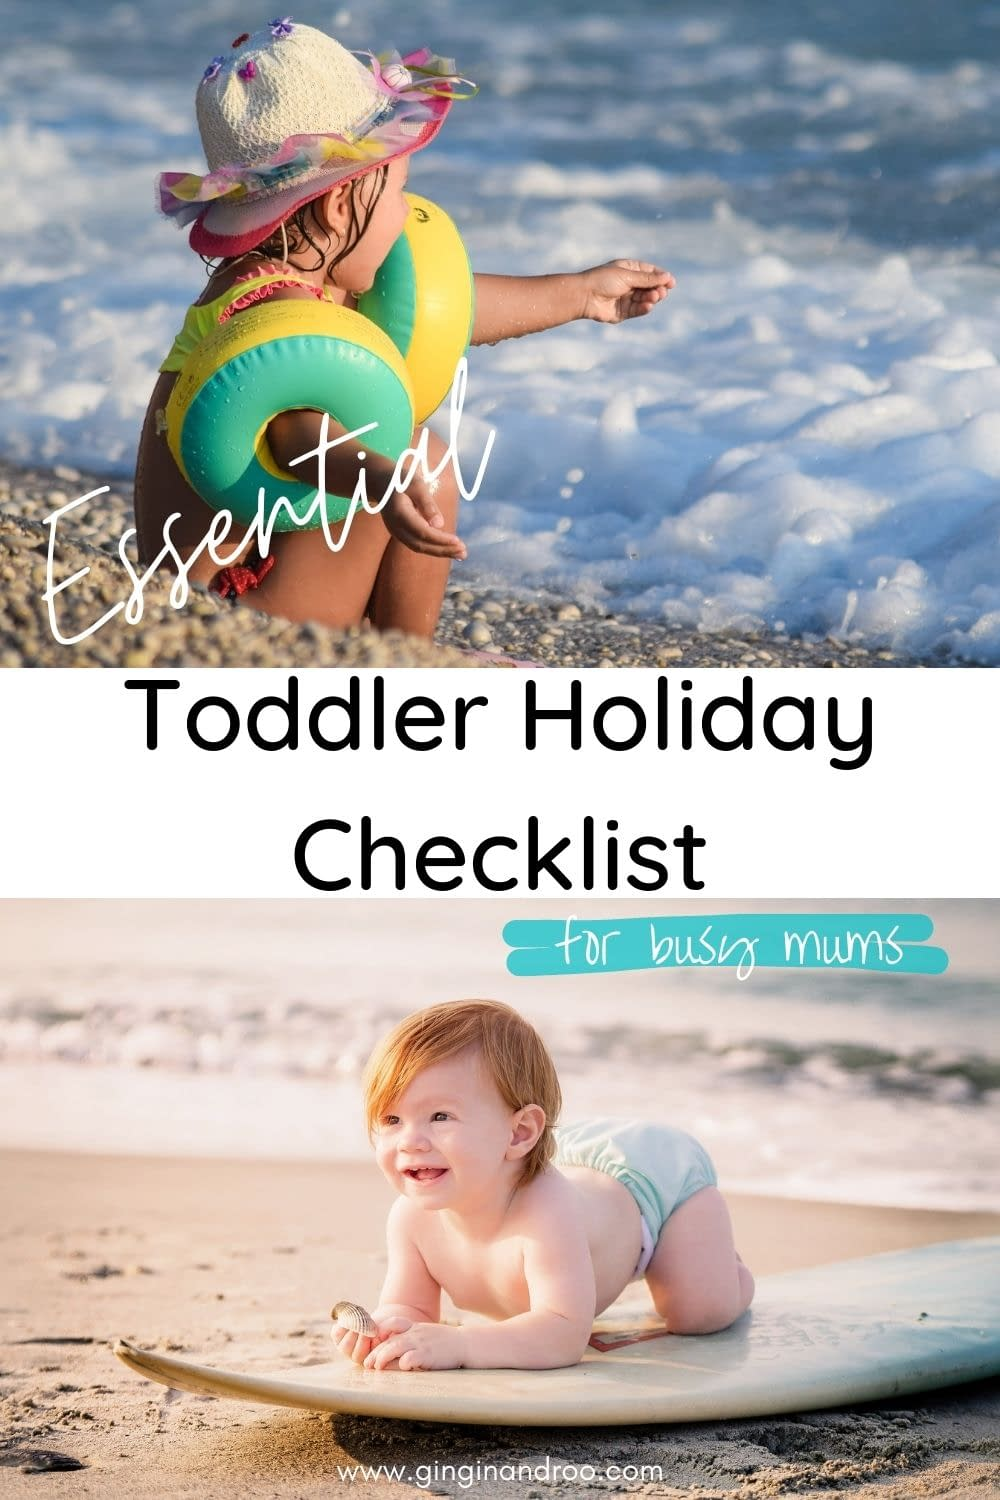 Toddler Holiday: An Essential Packing List For Busy Mums by GinGin & Roo #toddlerholiday #toddlerparenting #toddlertips #toddlervacation